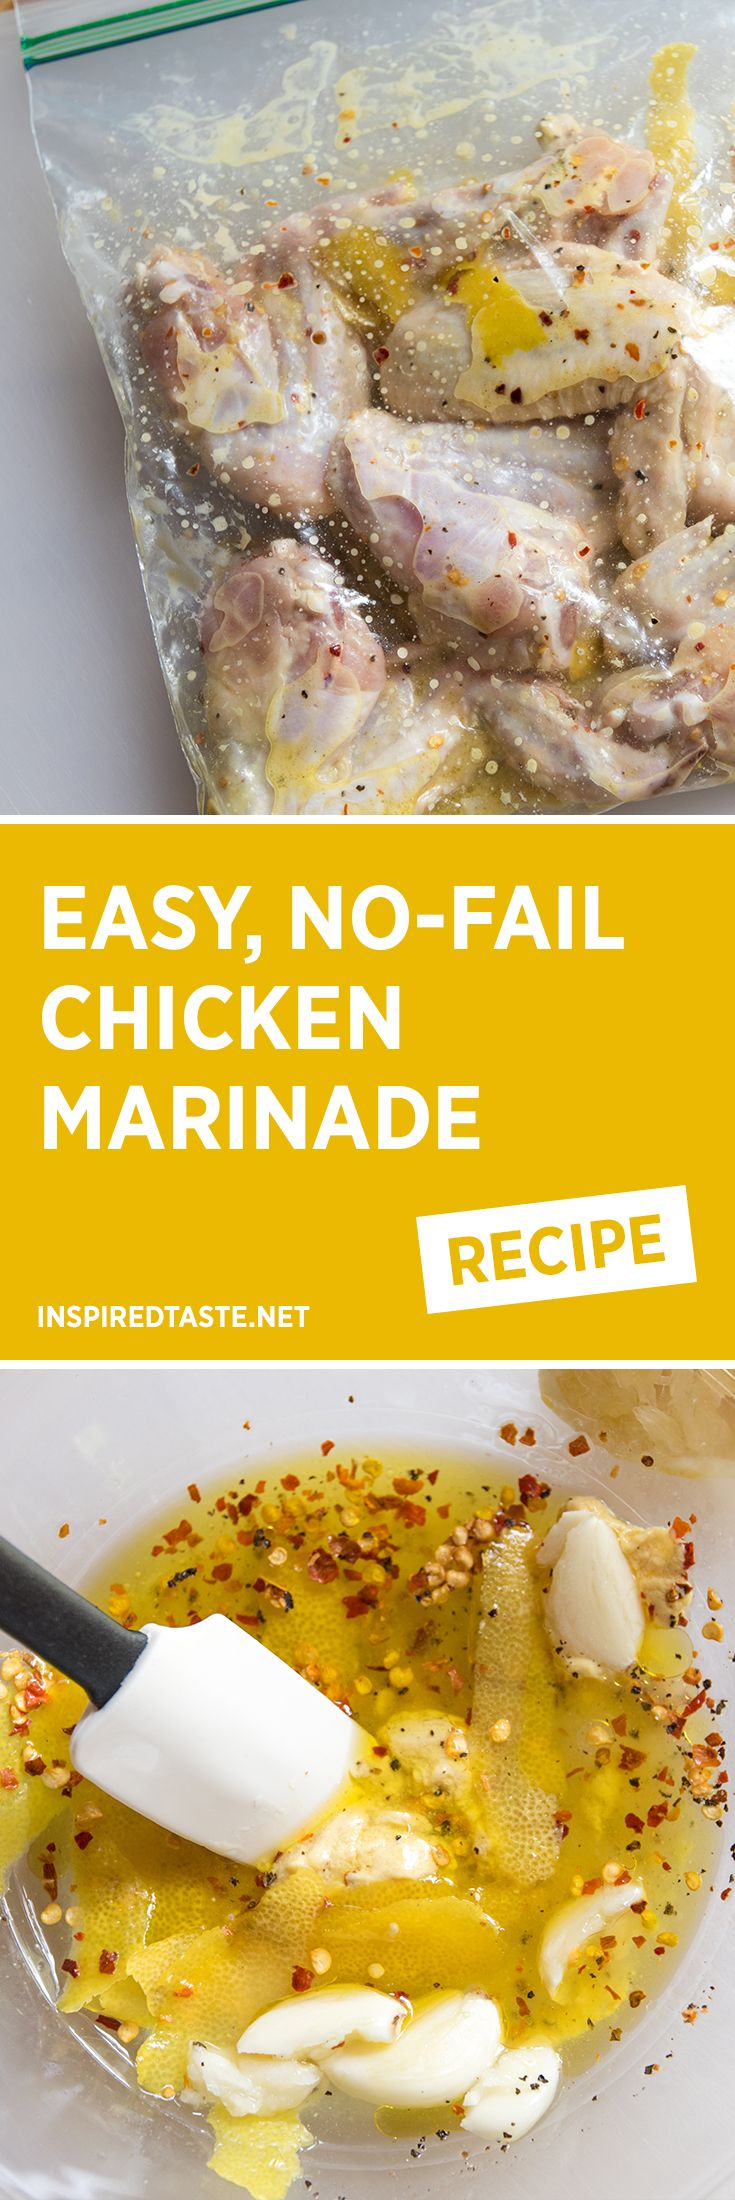 If you're on the lookout for a simple, no-fail chicken marinade recipe, you've found it. Use this for baked or grilled chicken.